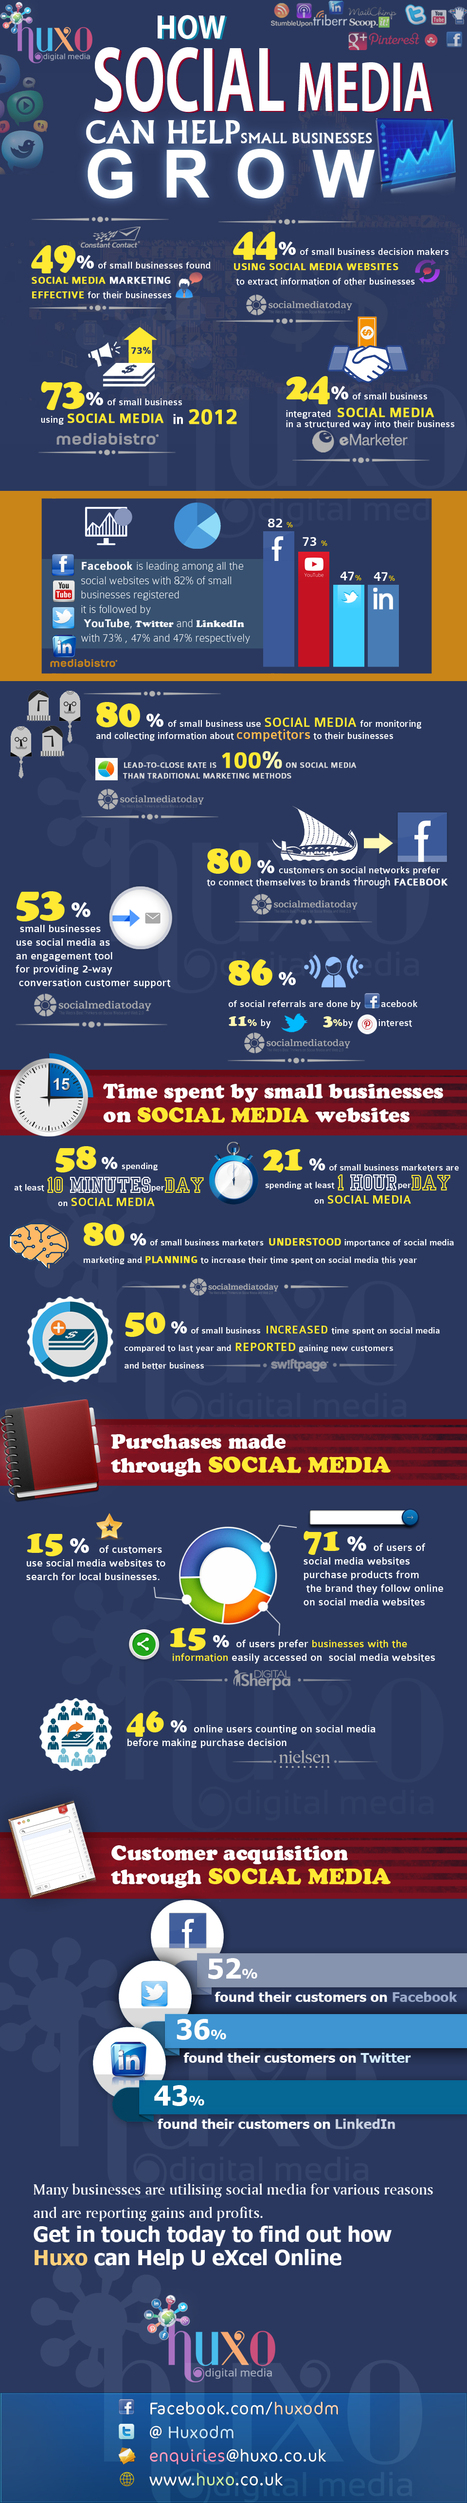 Social Media Statistics for Small Businesses: Infographic | Social media! | Scoop.it